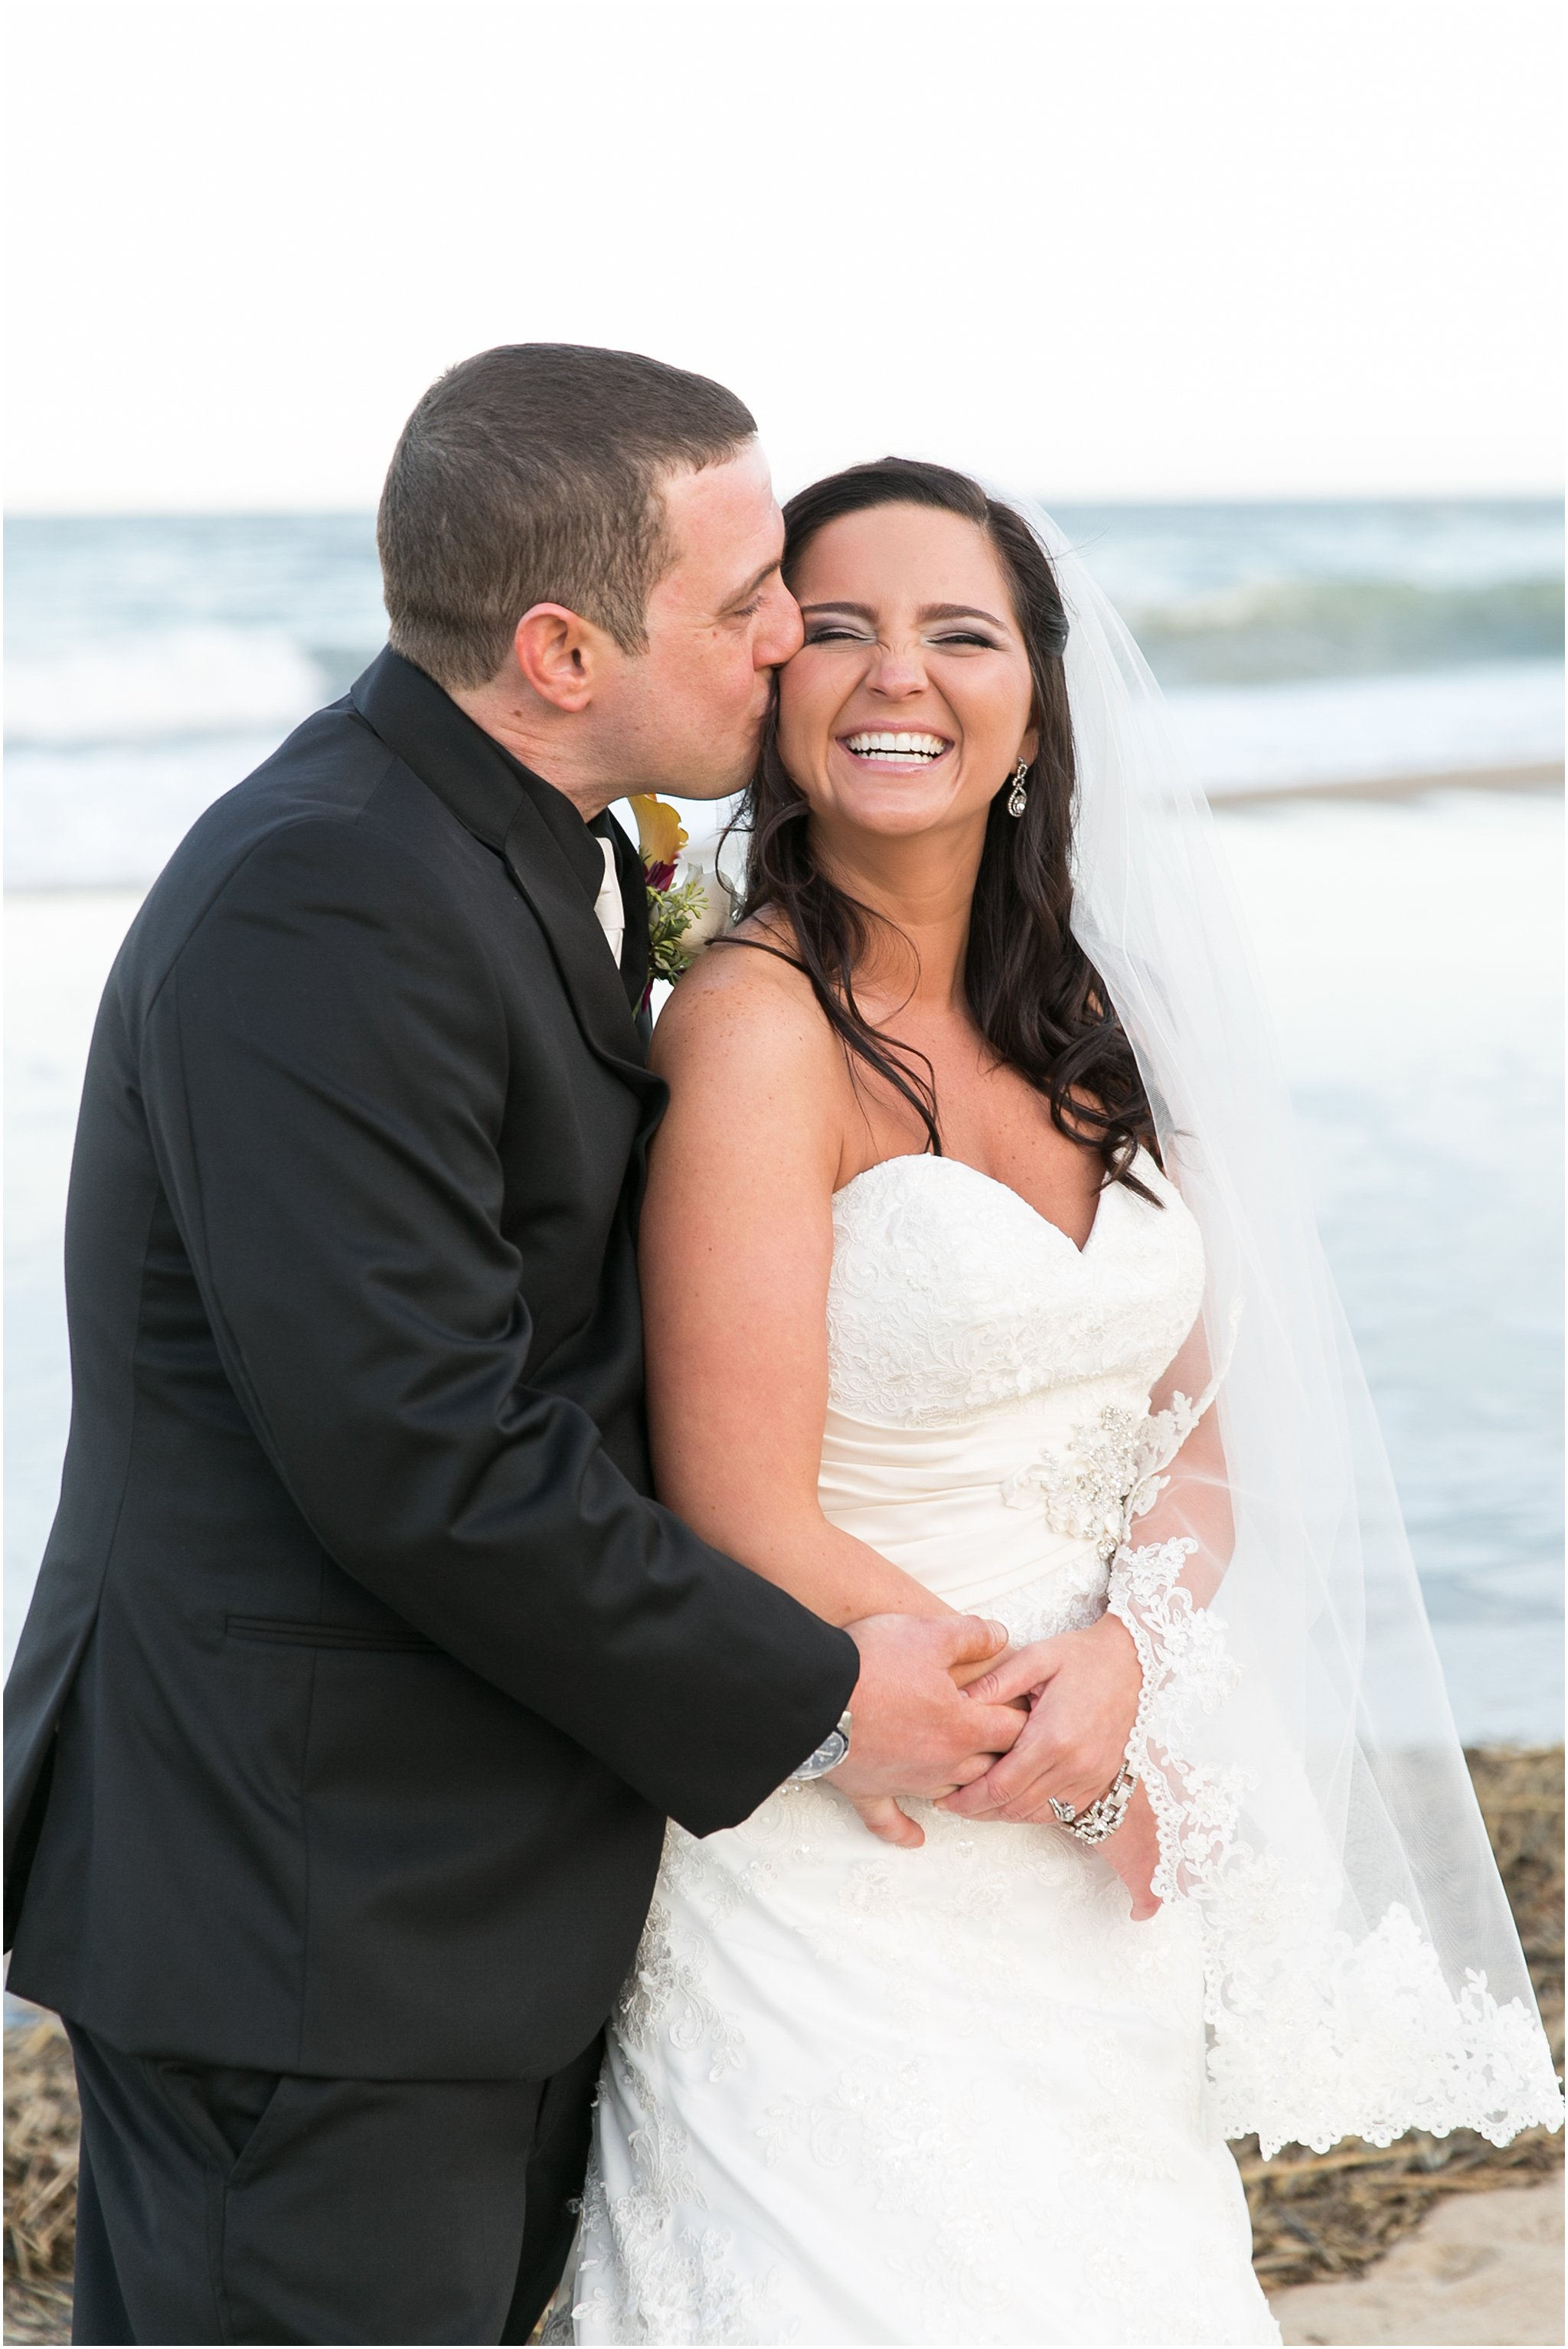 jessica_ryan_photography_wedding_hampton_roads_virginia_virginia_beach_weddings_0620